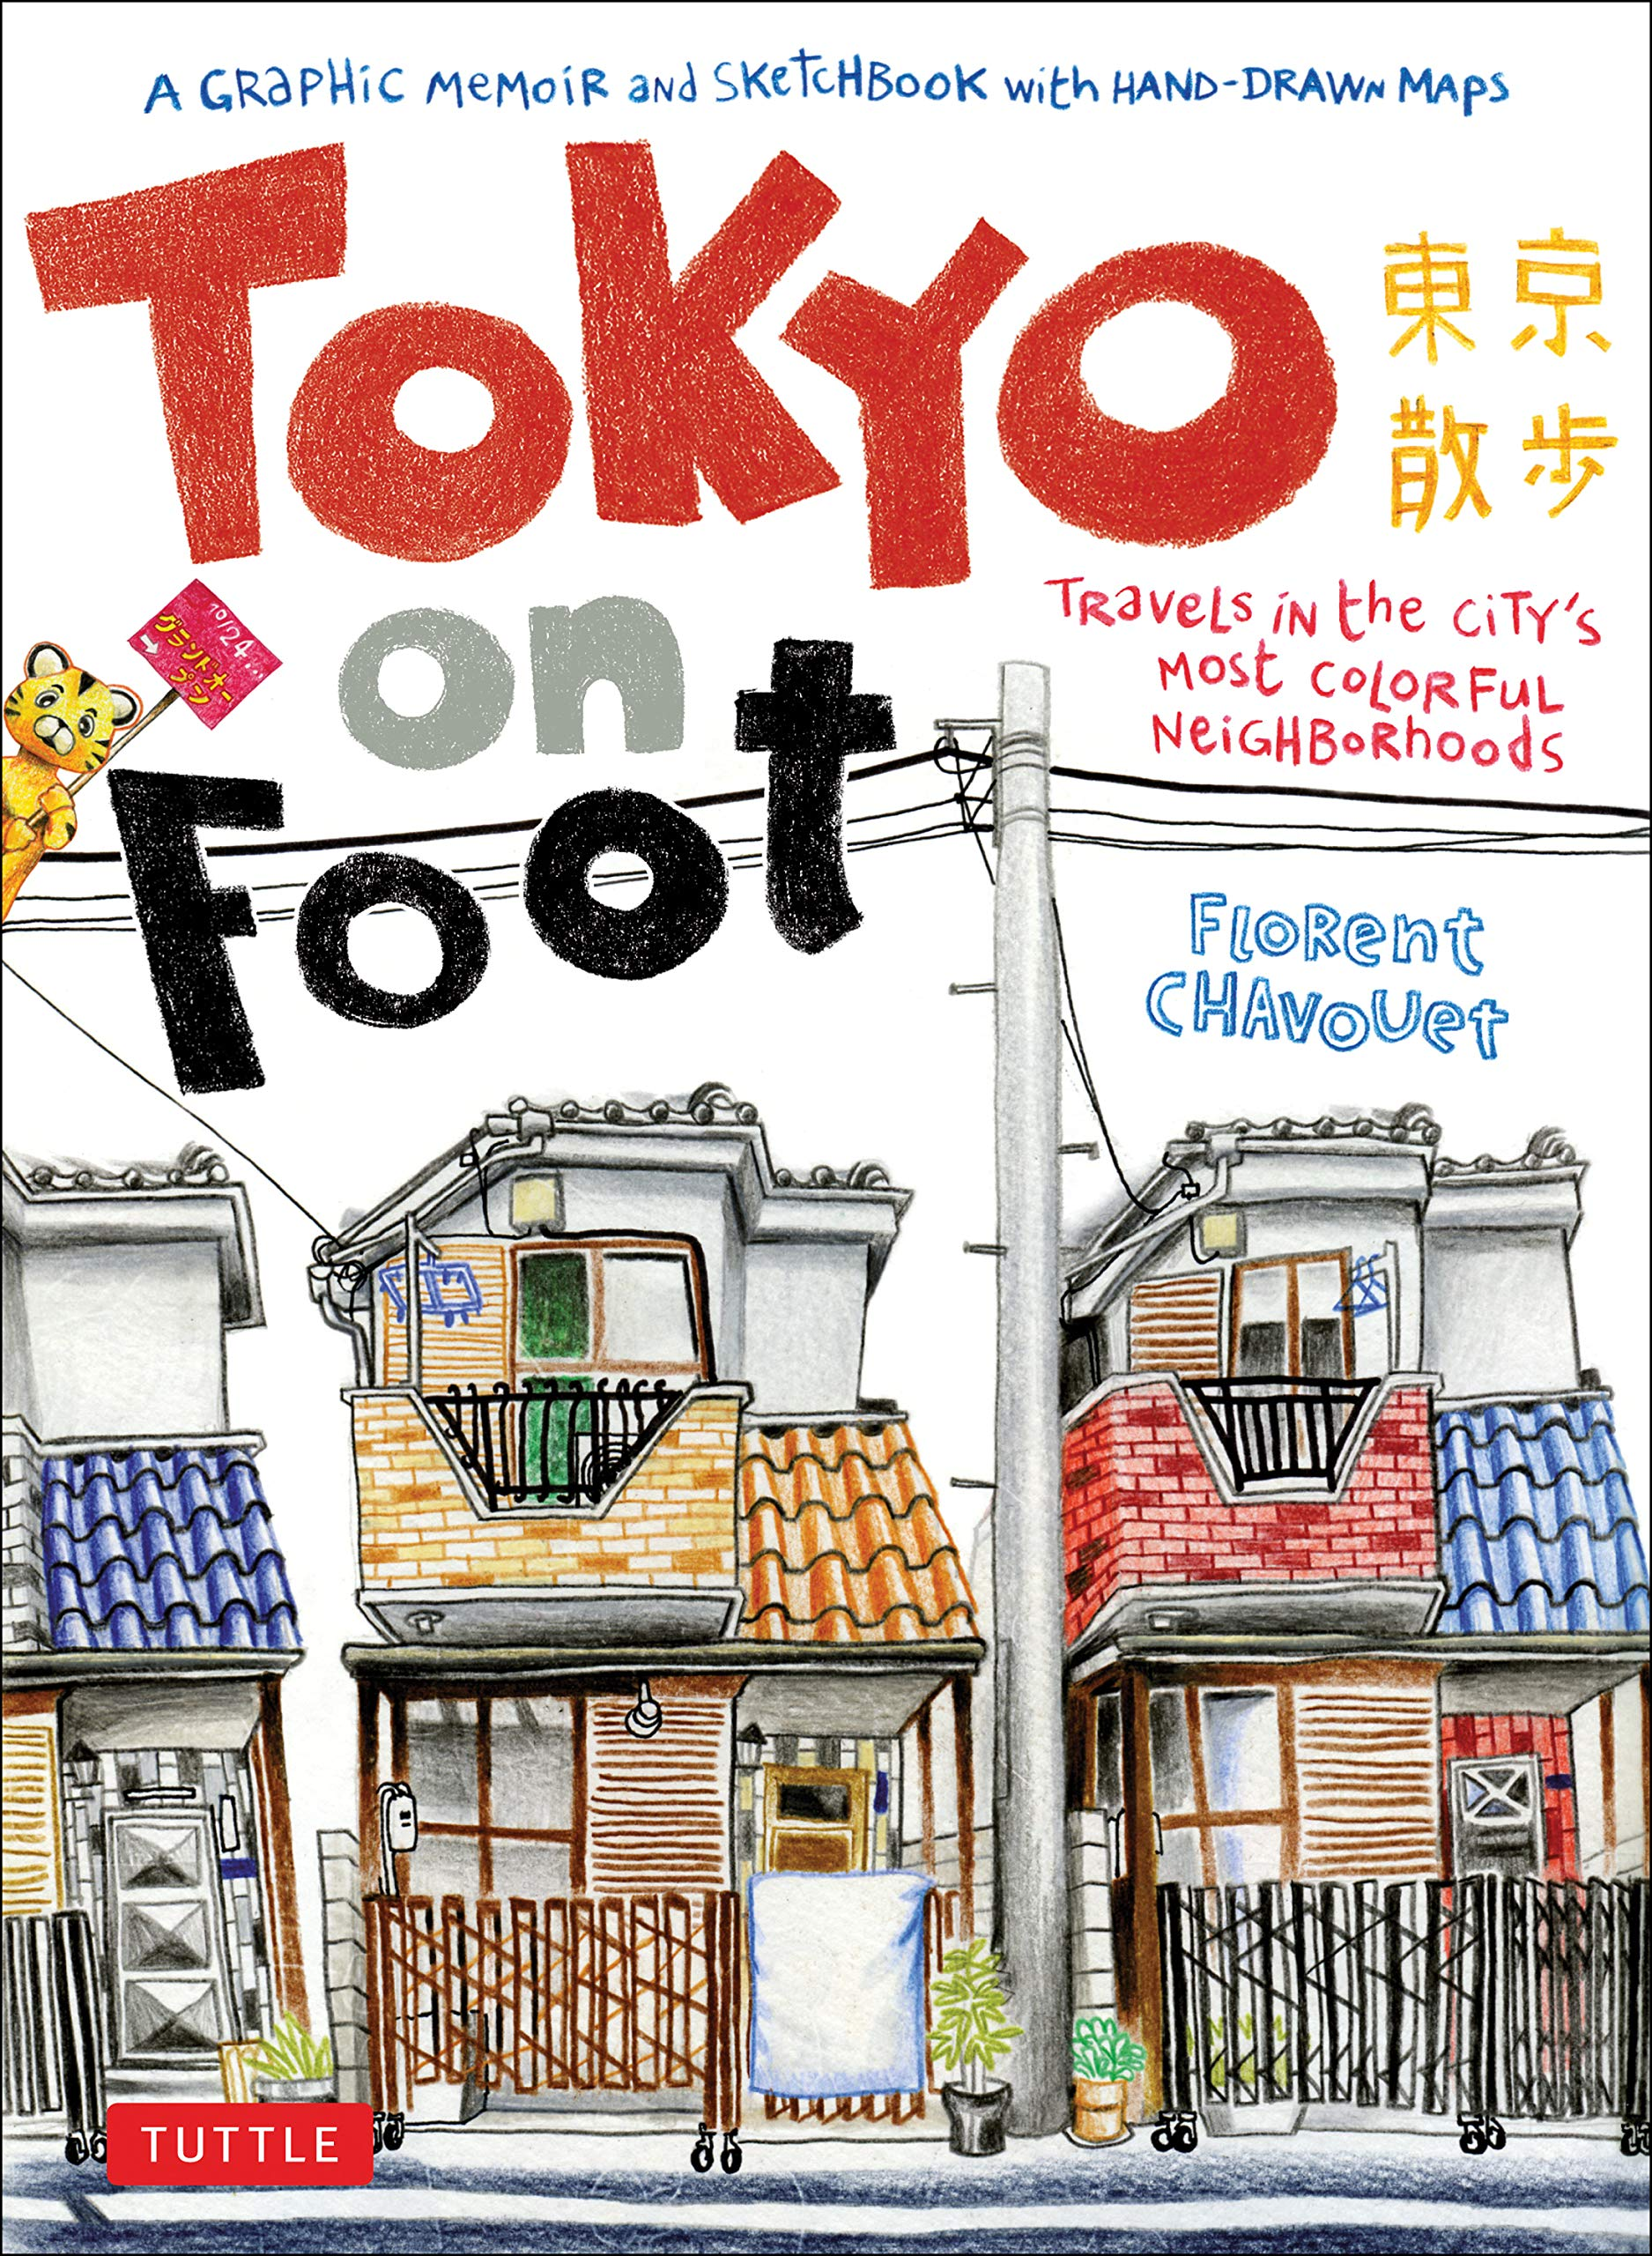 7 Japan Travel Books To Inspire Future Trips Tokyo on Foot